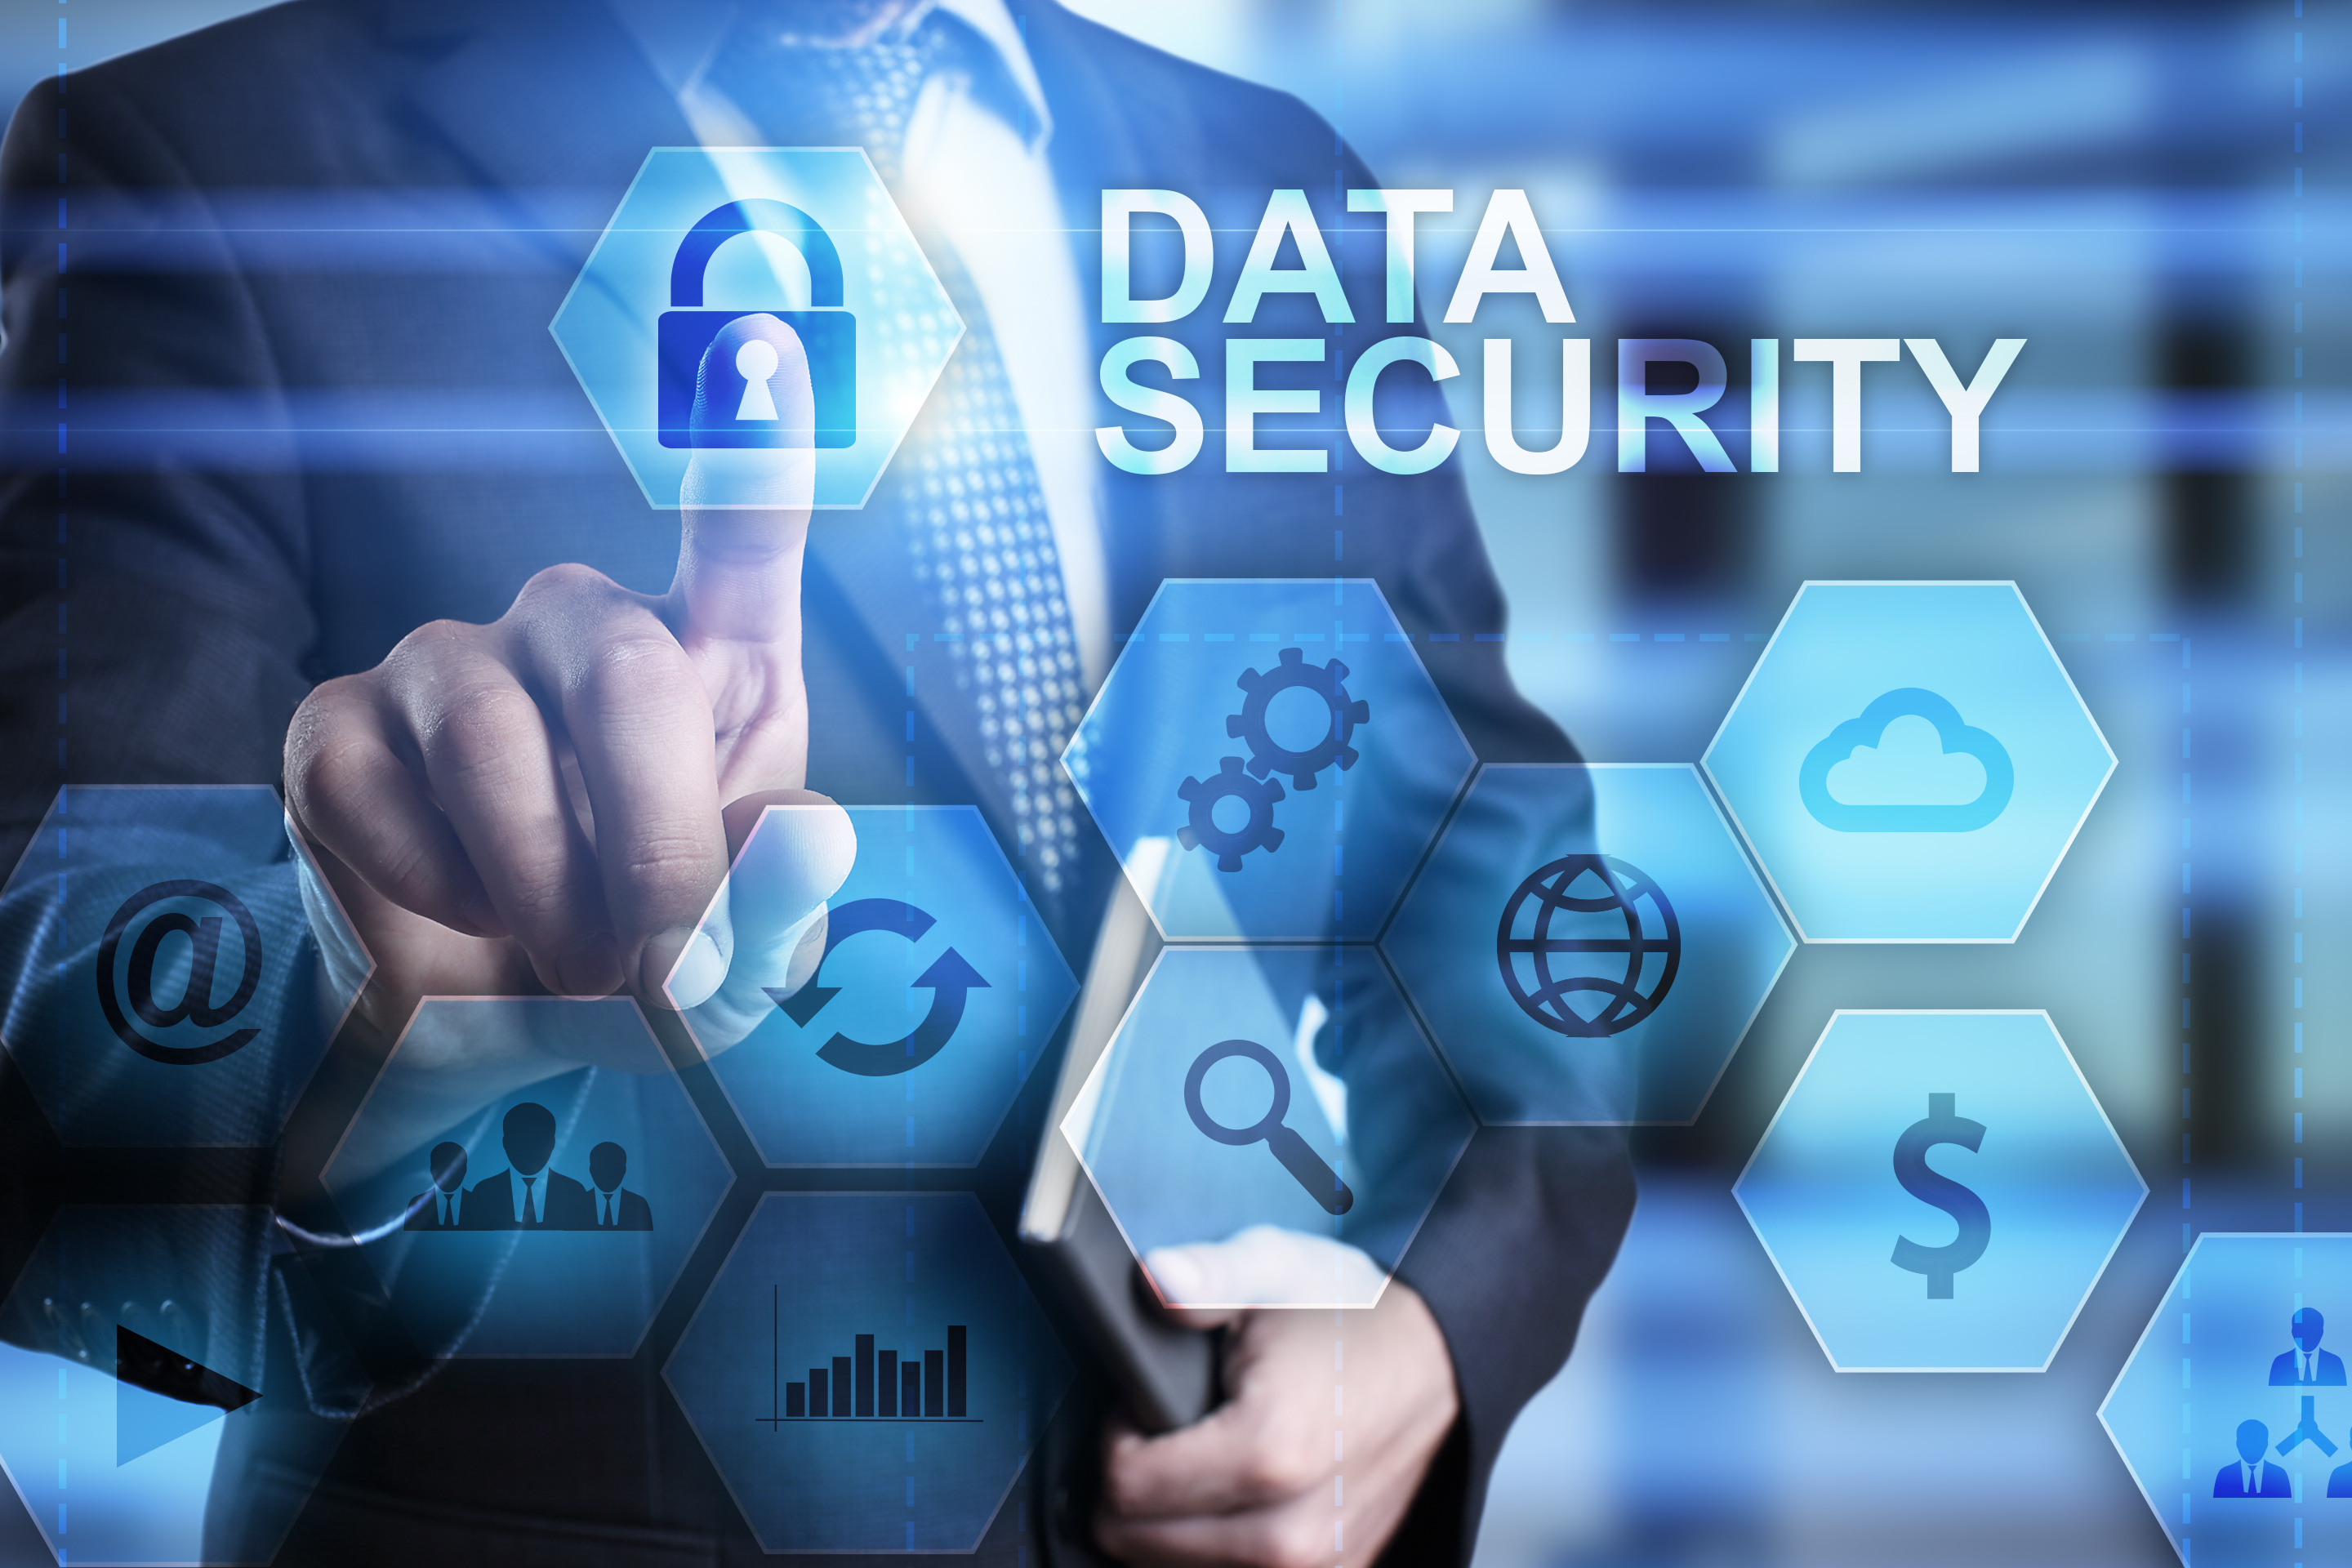 iot-security-compliance-at-the-rack-level - https://cdn.buttercms.com/aySfIMUrRY6UsWfDxPDr